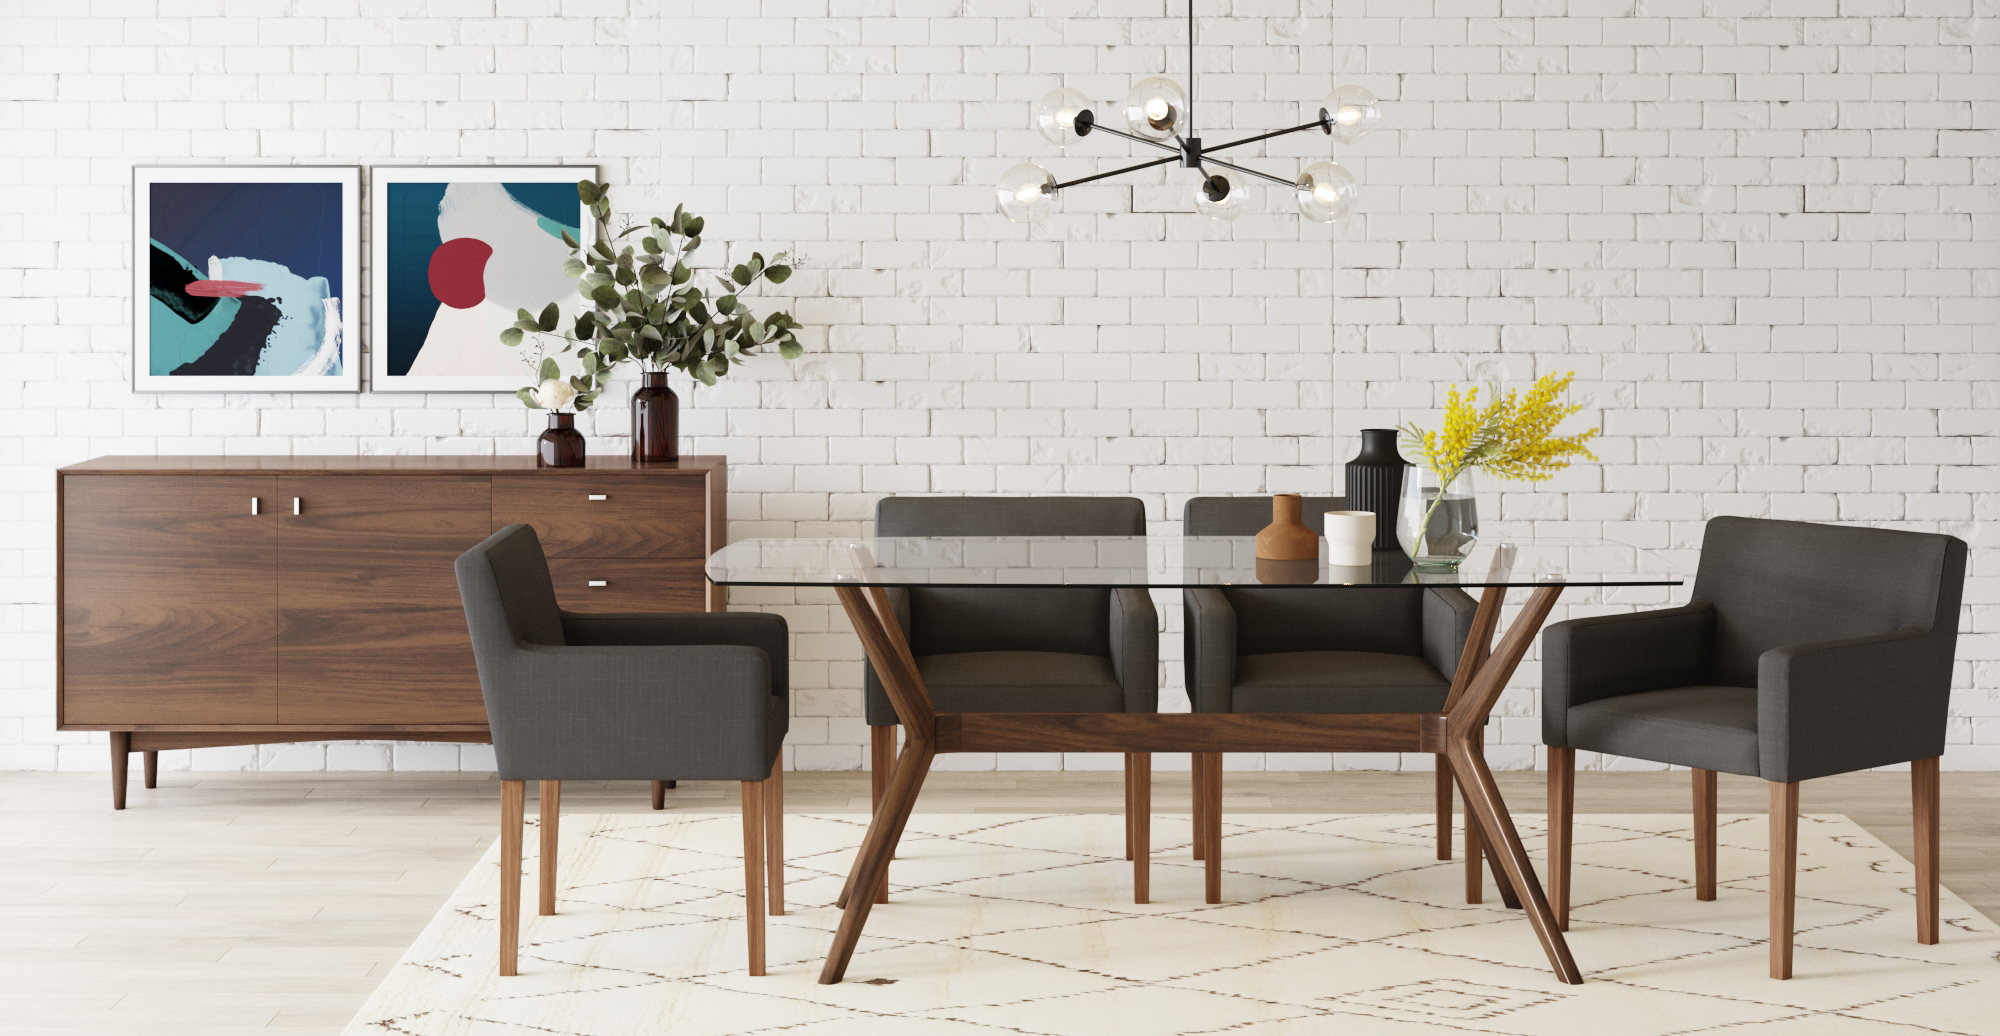 Brosa Olsen Glass Top Dining Table 185cm styled in mid century modern dining room